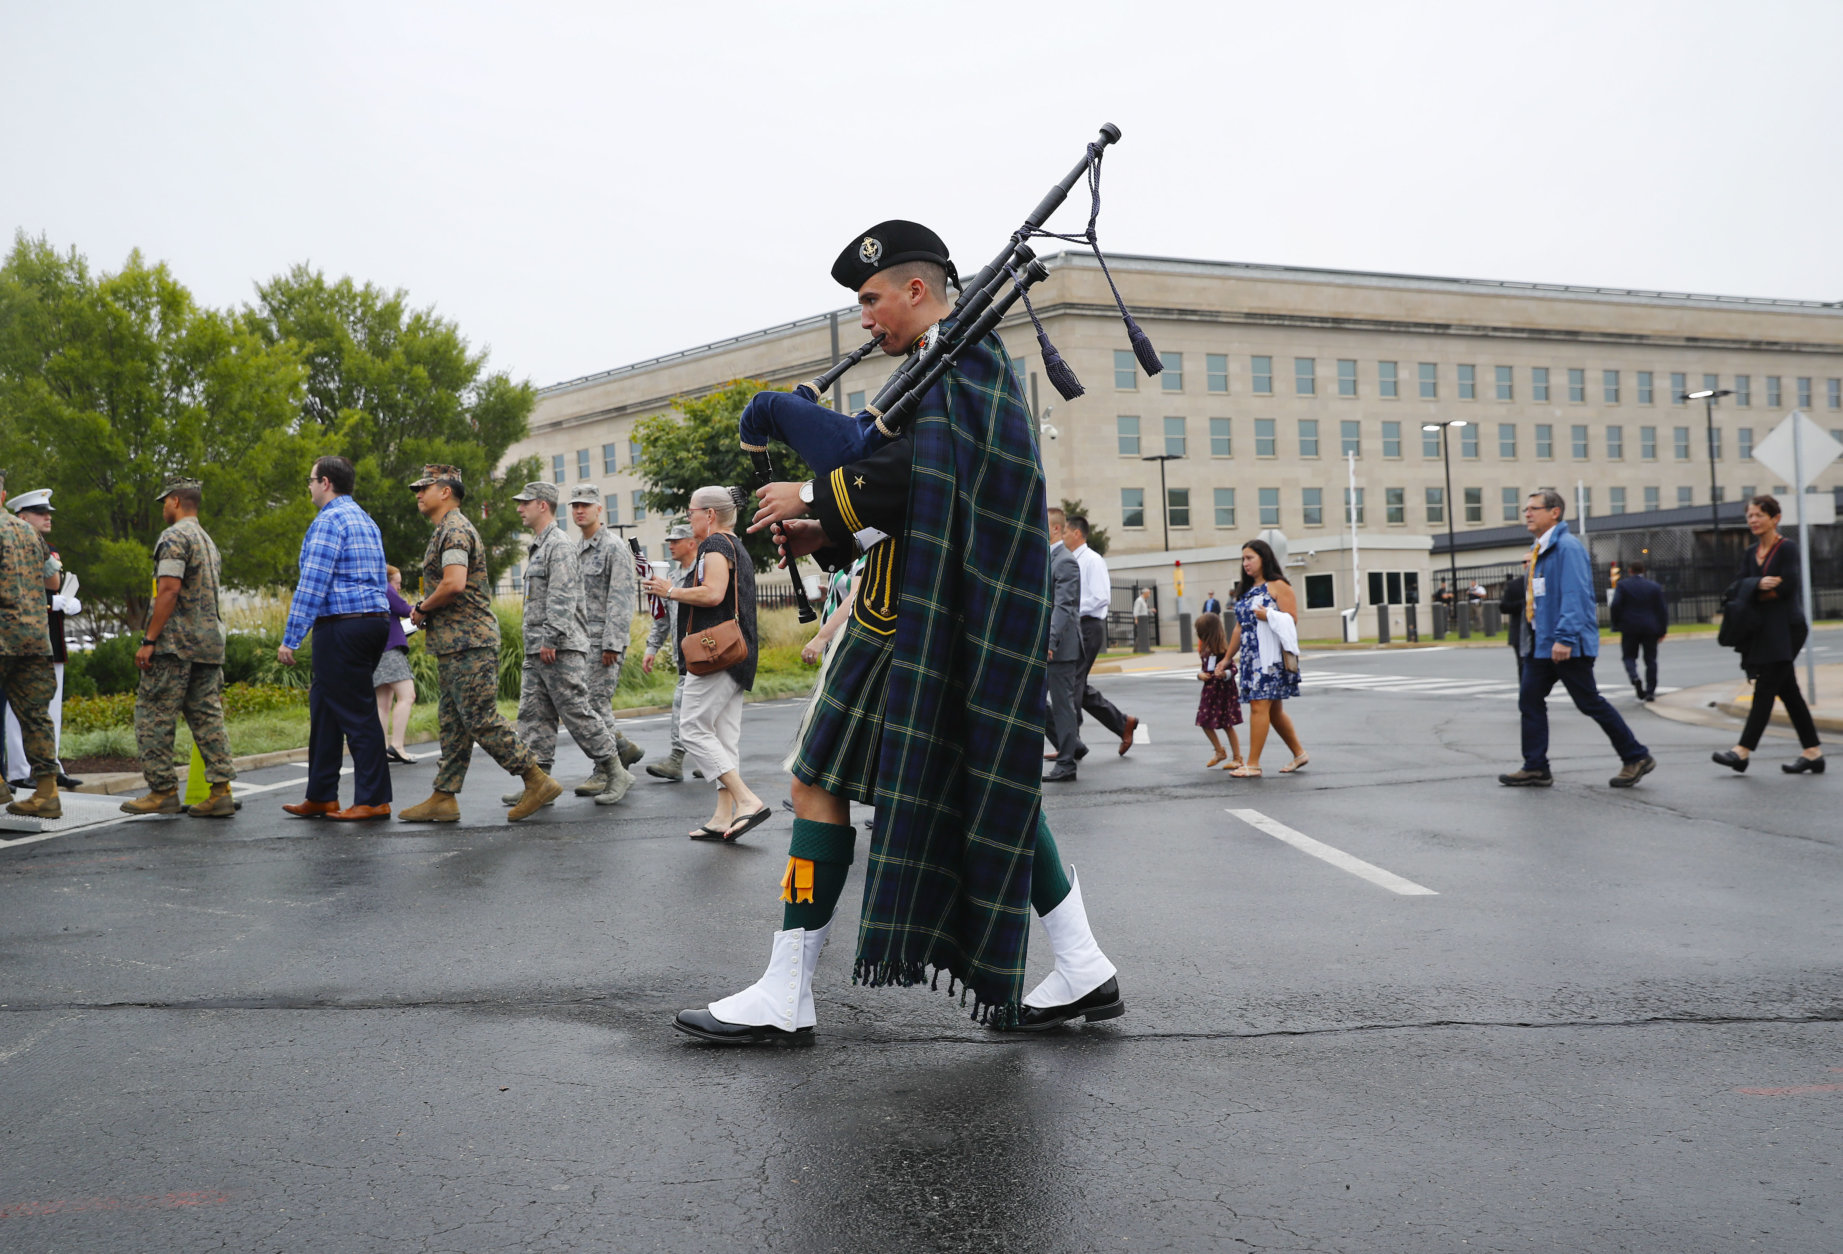 A musician plays his bagpipes as he walks with visitors and guests before the start of the September 11th Pentagon Memorial Observance at the Pentagon on the 17th anniversary of the September 11th attacks, Tuesday, Sept. 11, 2018. (AP Photo/Pablo Martinez Monsivais)